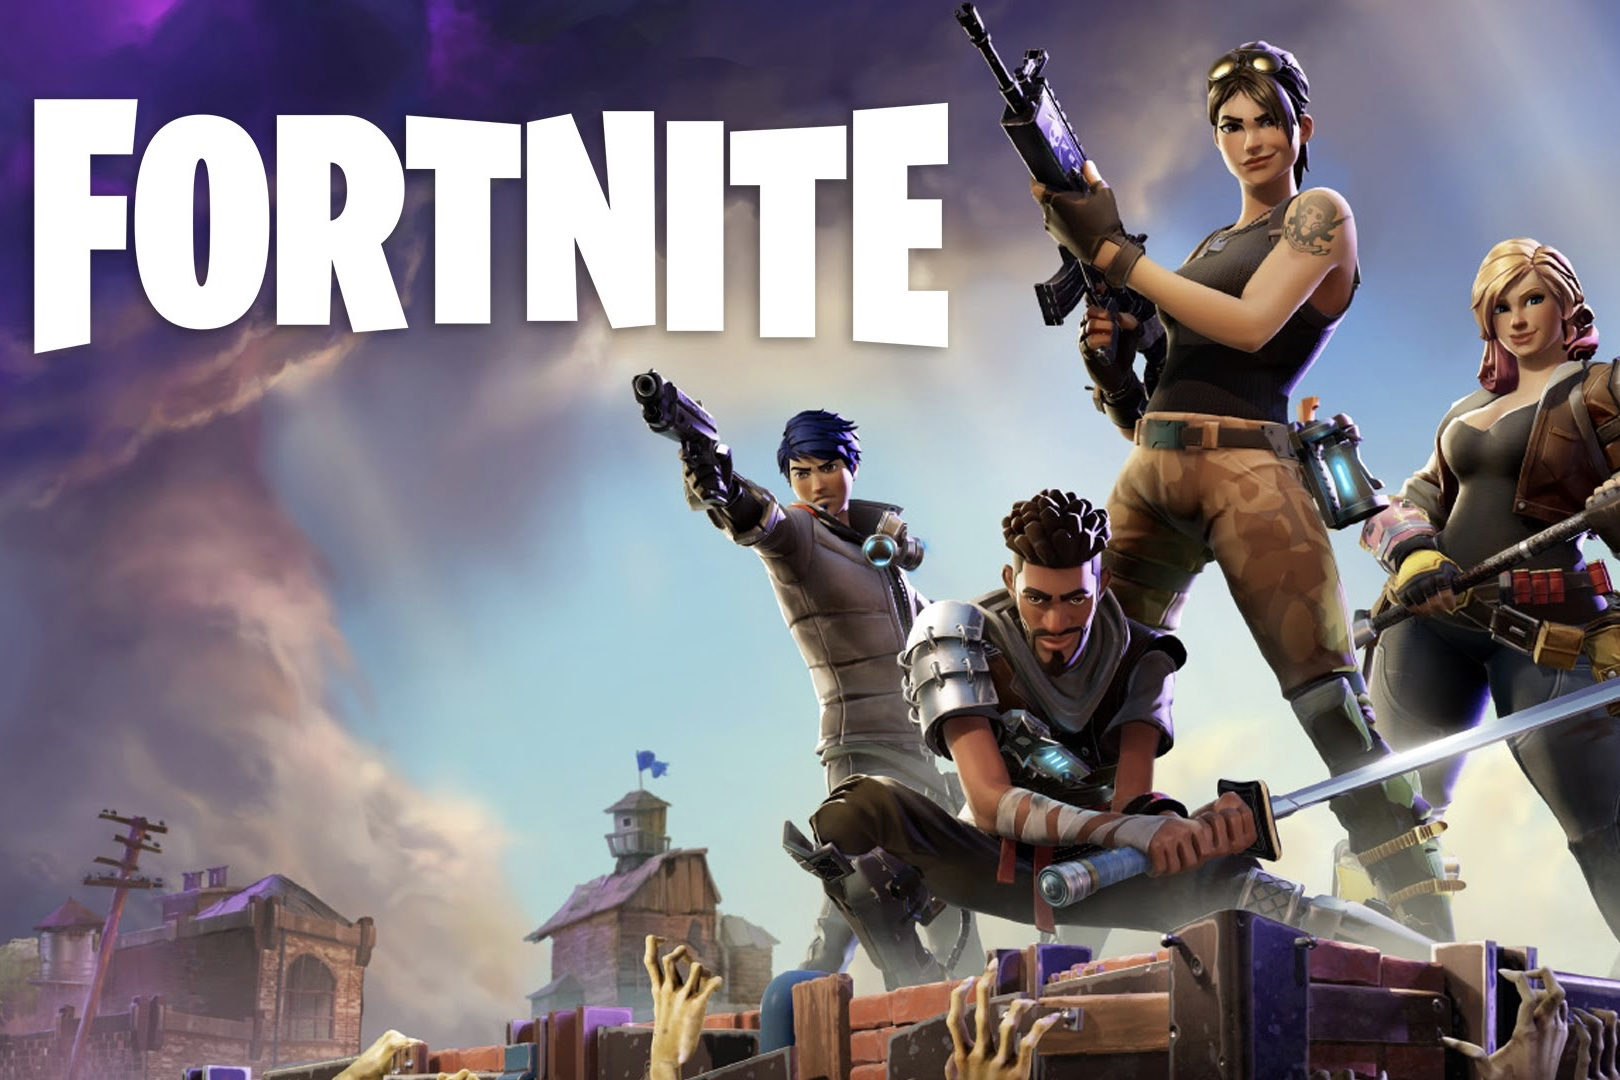 Fortnite Players Need To Be Careful Of False Links To Mobile Versions Of The Game 1